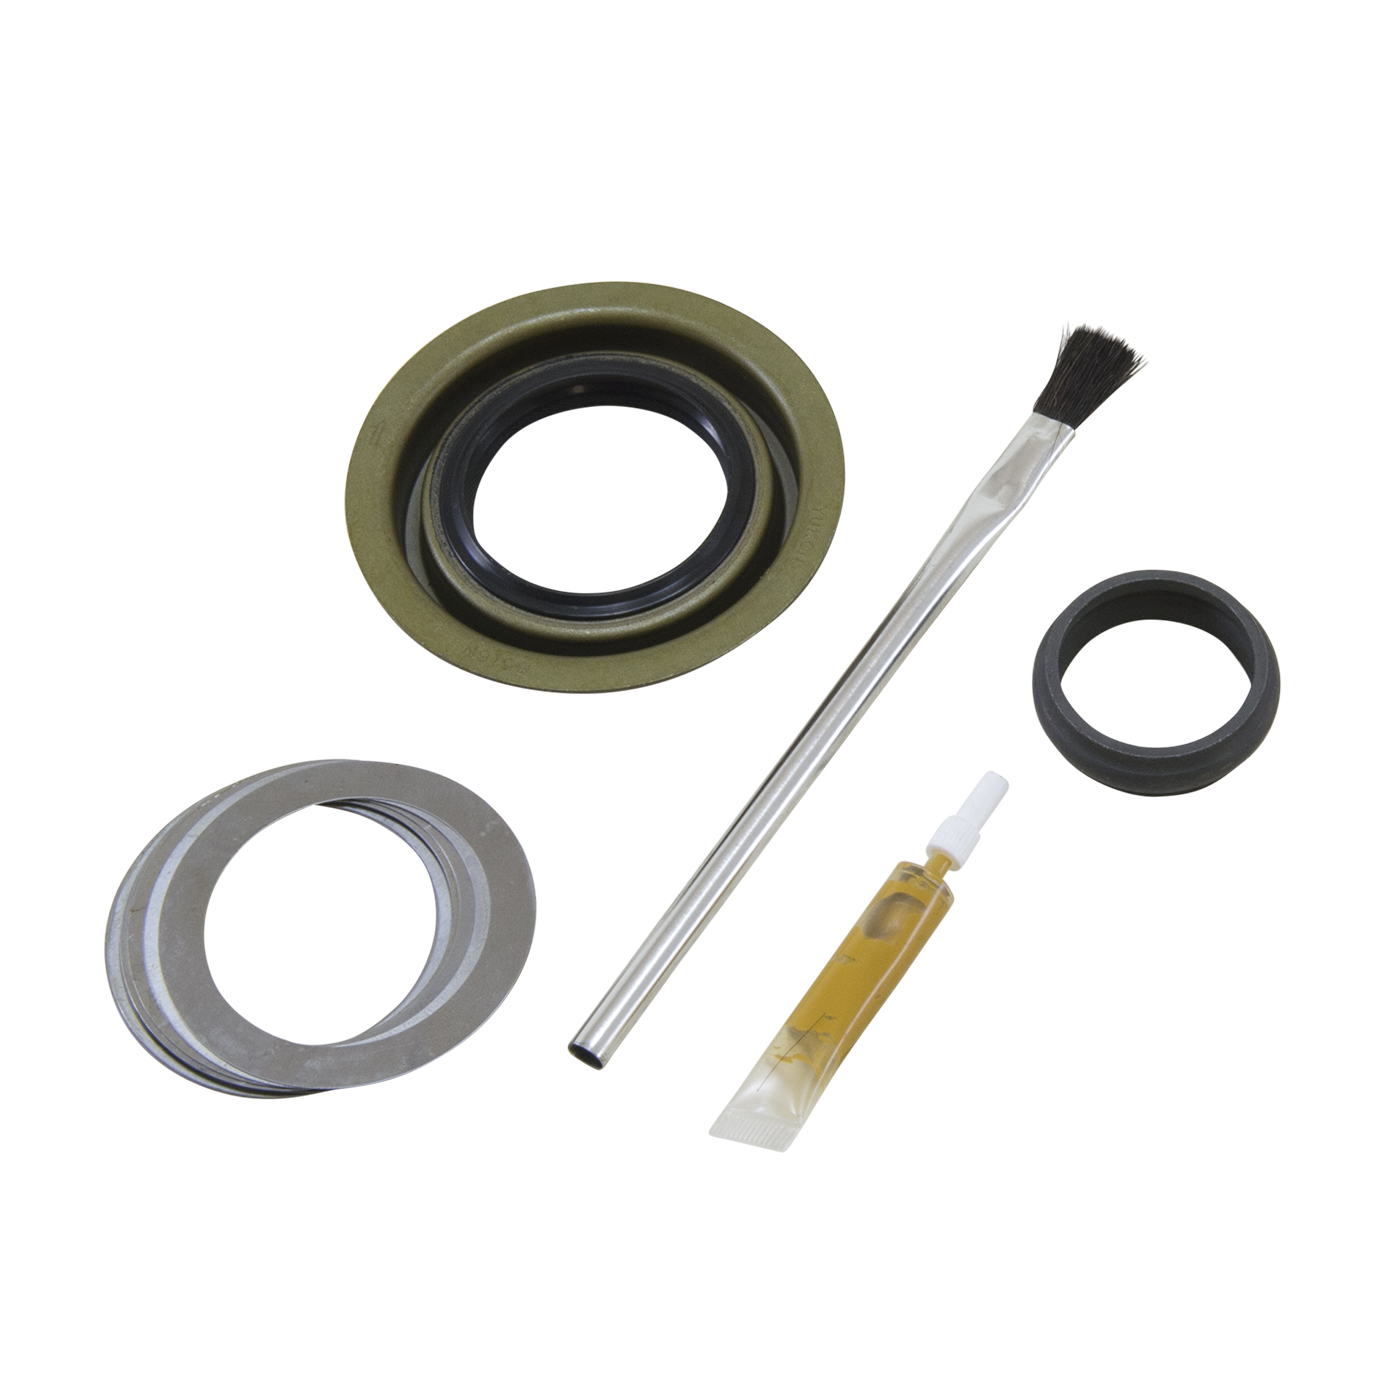 MK C8.75-41 - Yukon Minor install kit for Chrysler 41 8.75